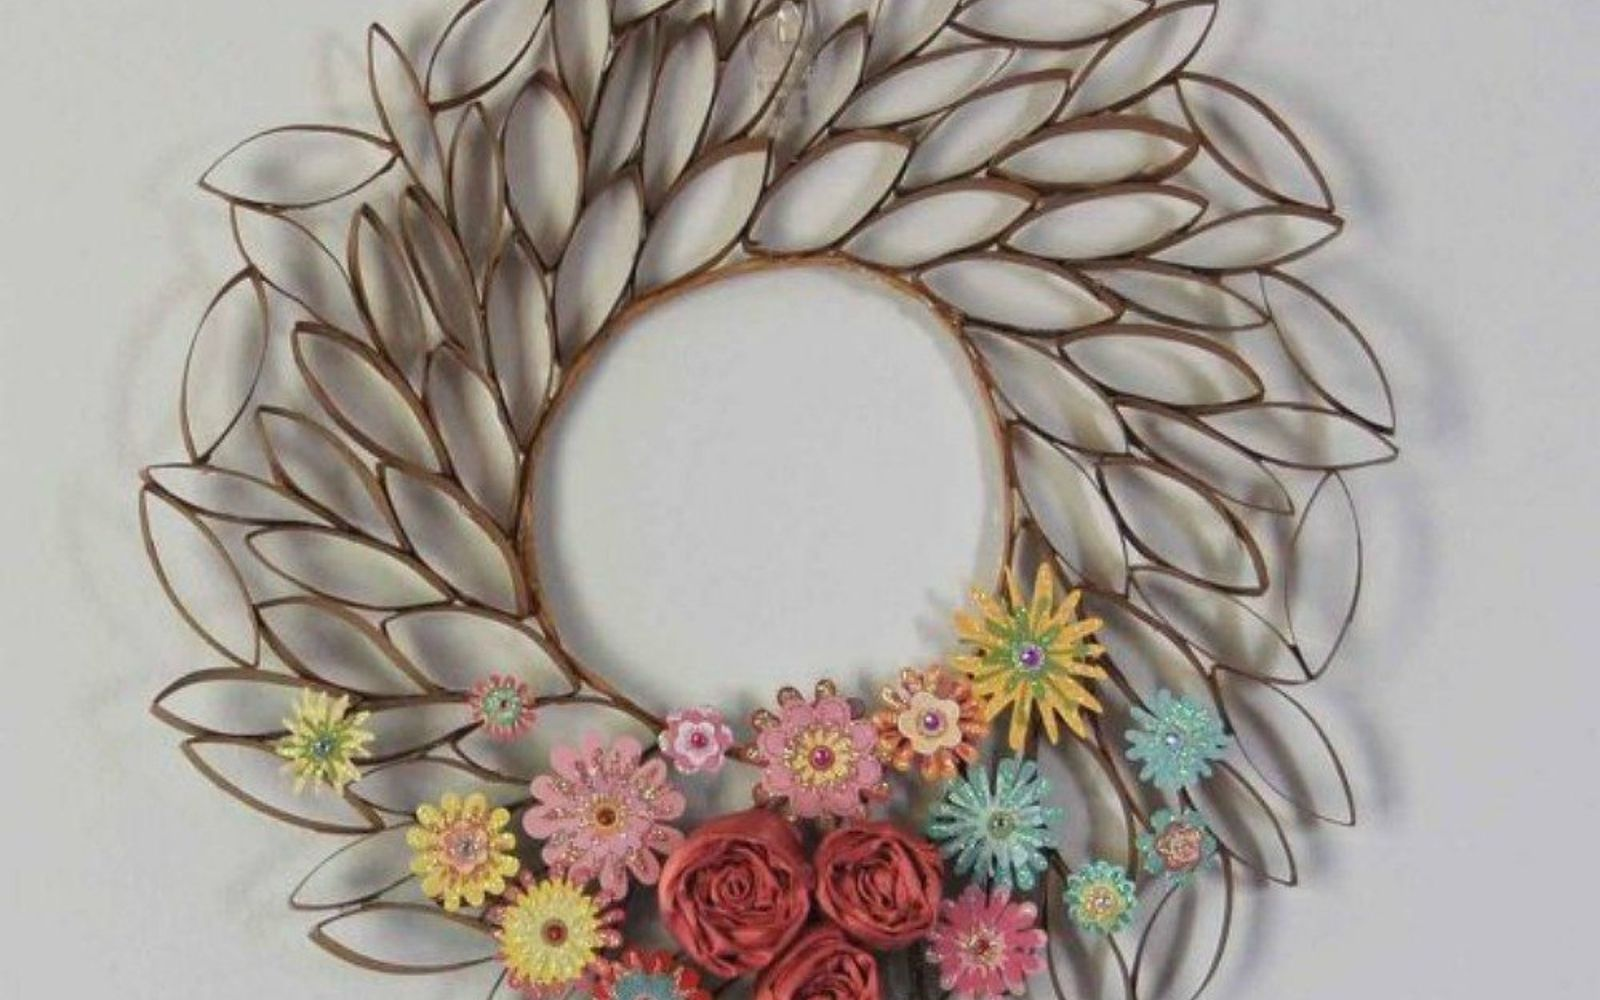 s 17 tricks to make a gorgeous wreath in half the time, crafts, wreaths, Or fold them into beautiful petals